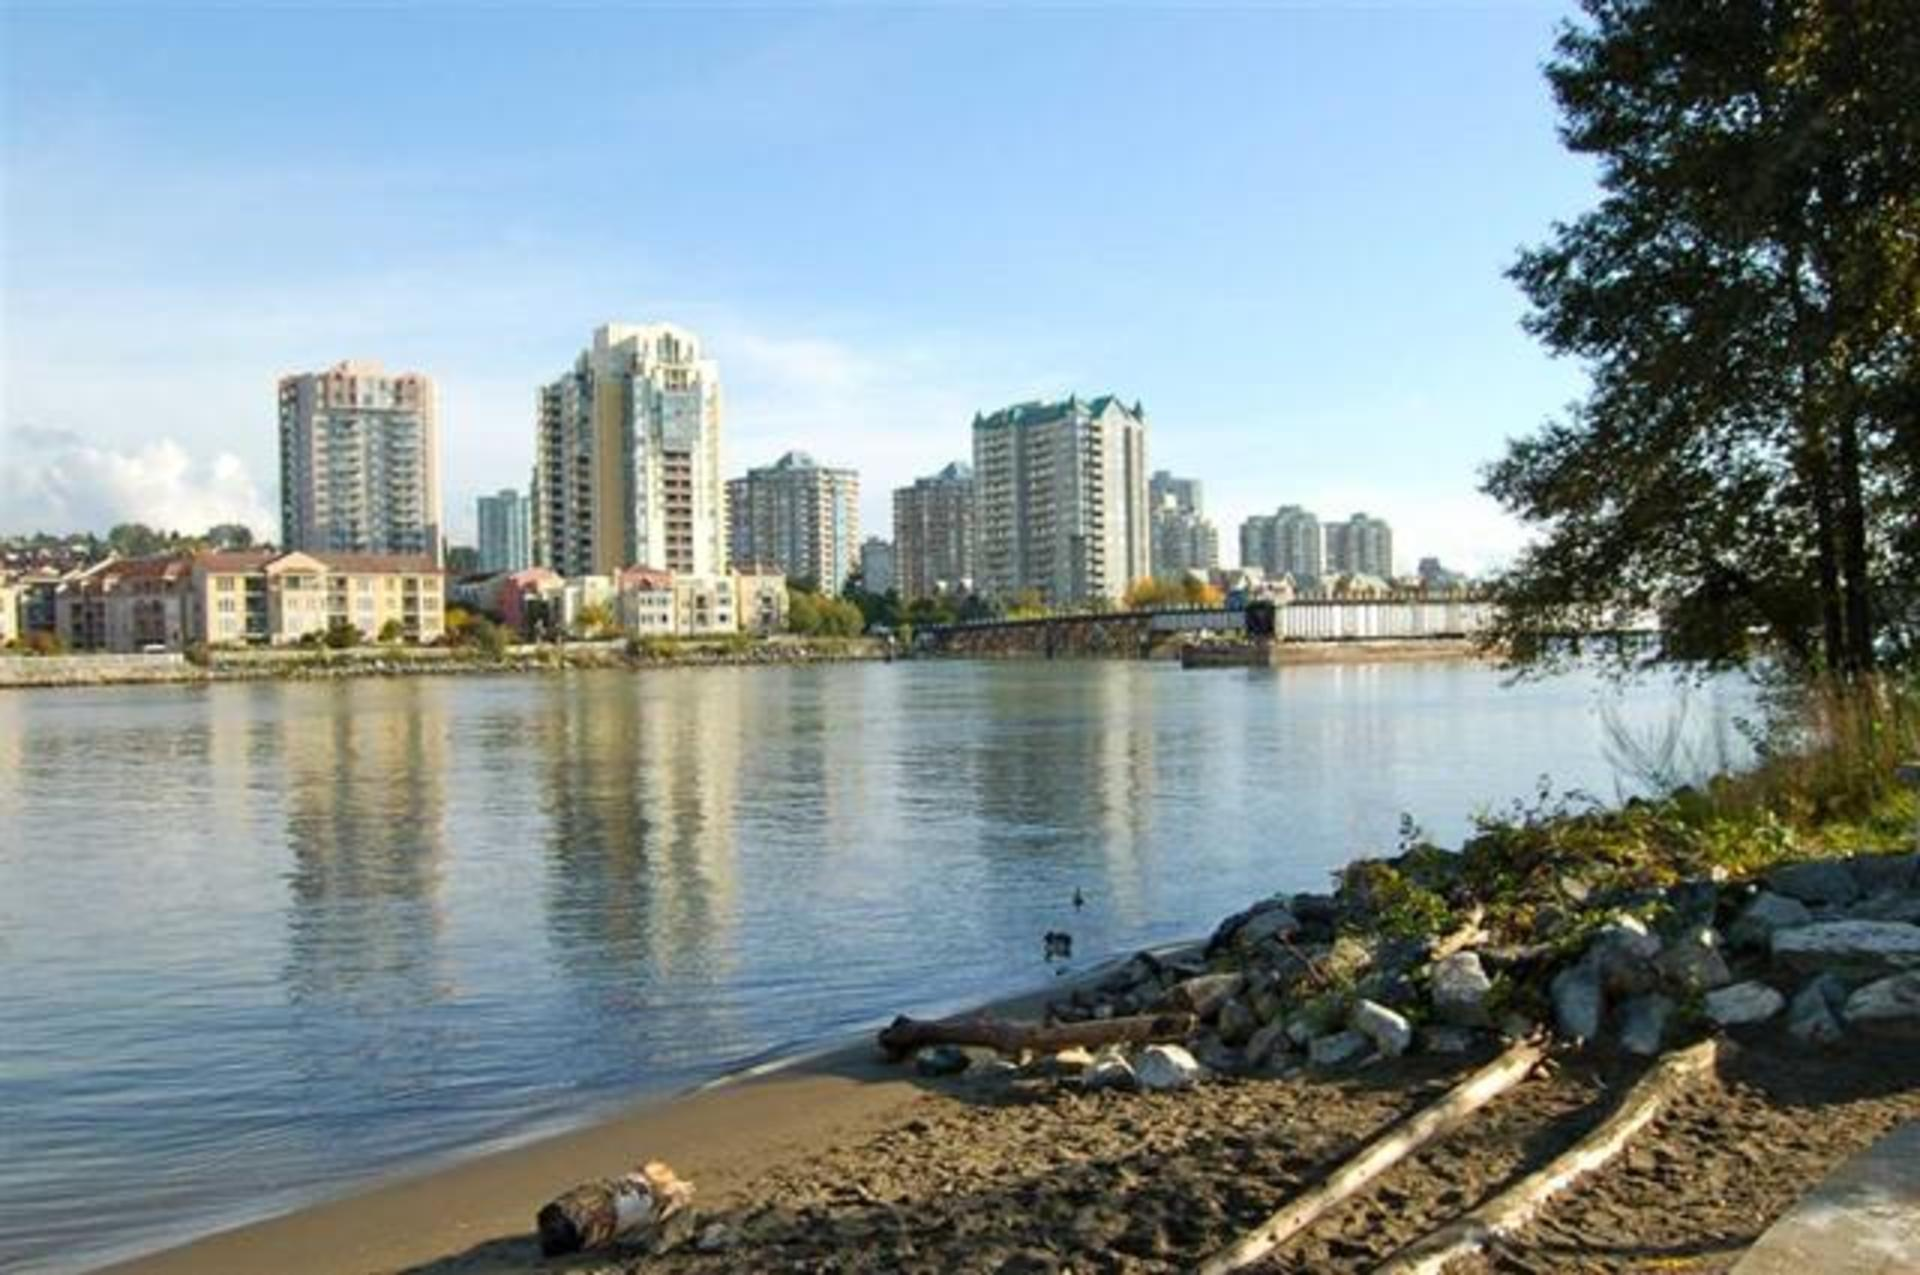 262366255-16 at 205 - 83 Star Crescent, Queensborough, New Westminster